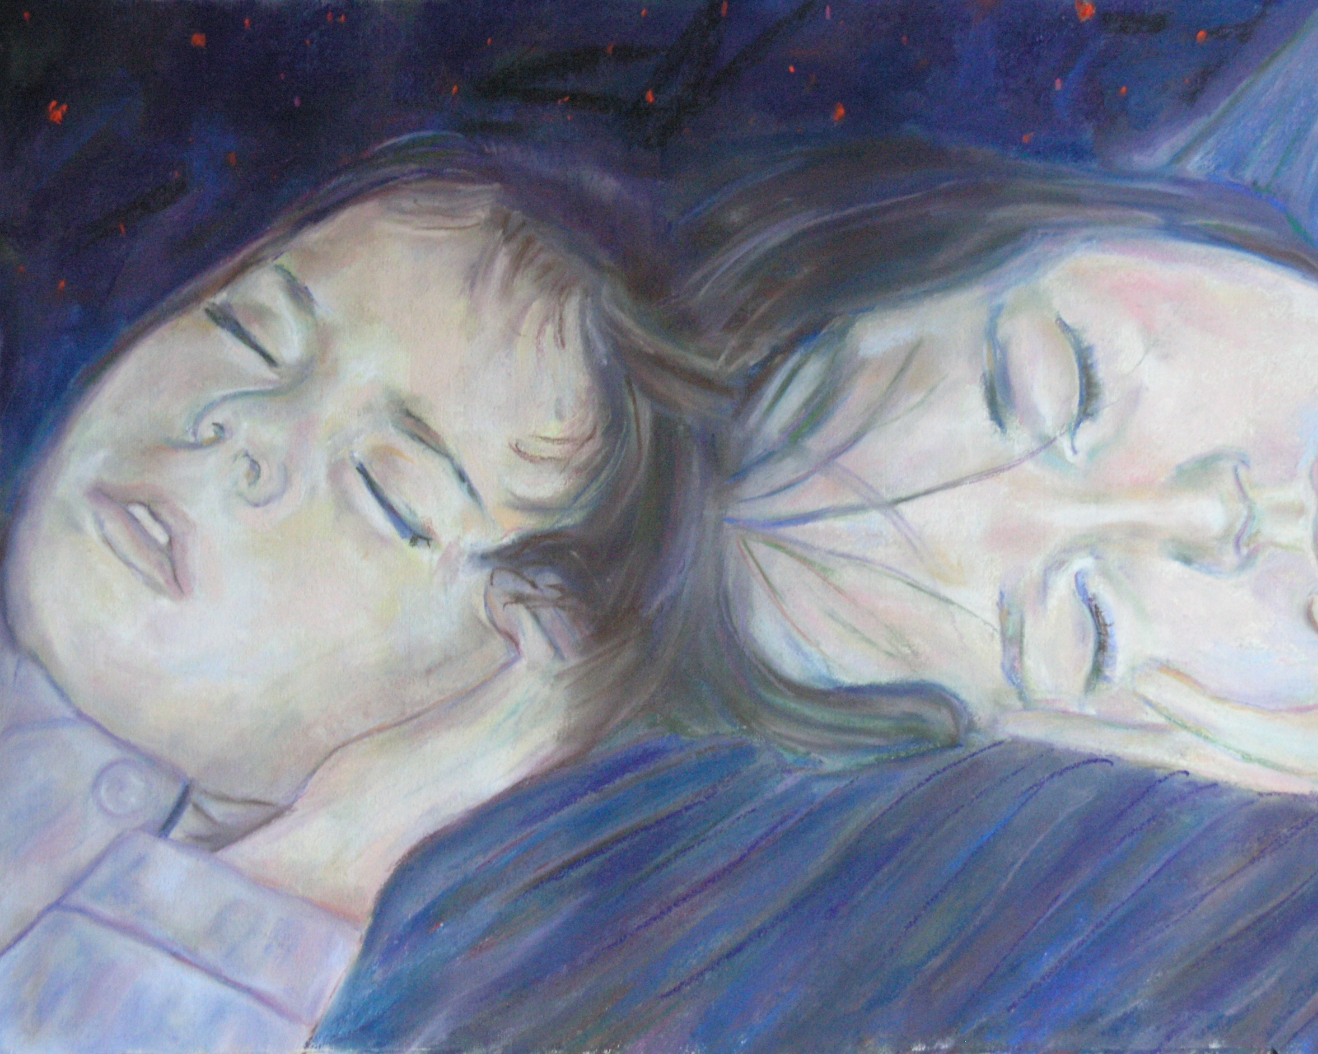 In dreams - Maud and Marine (det.))